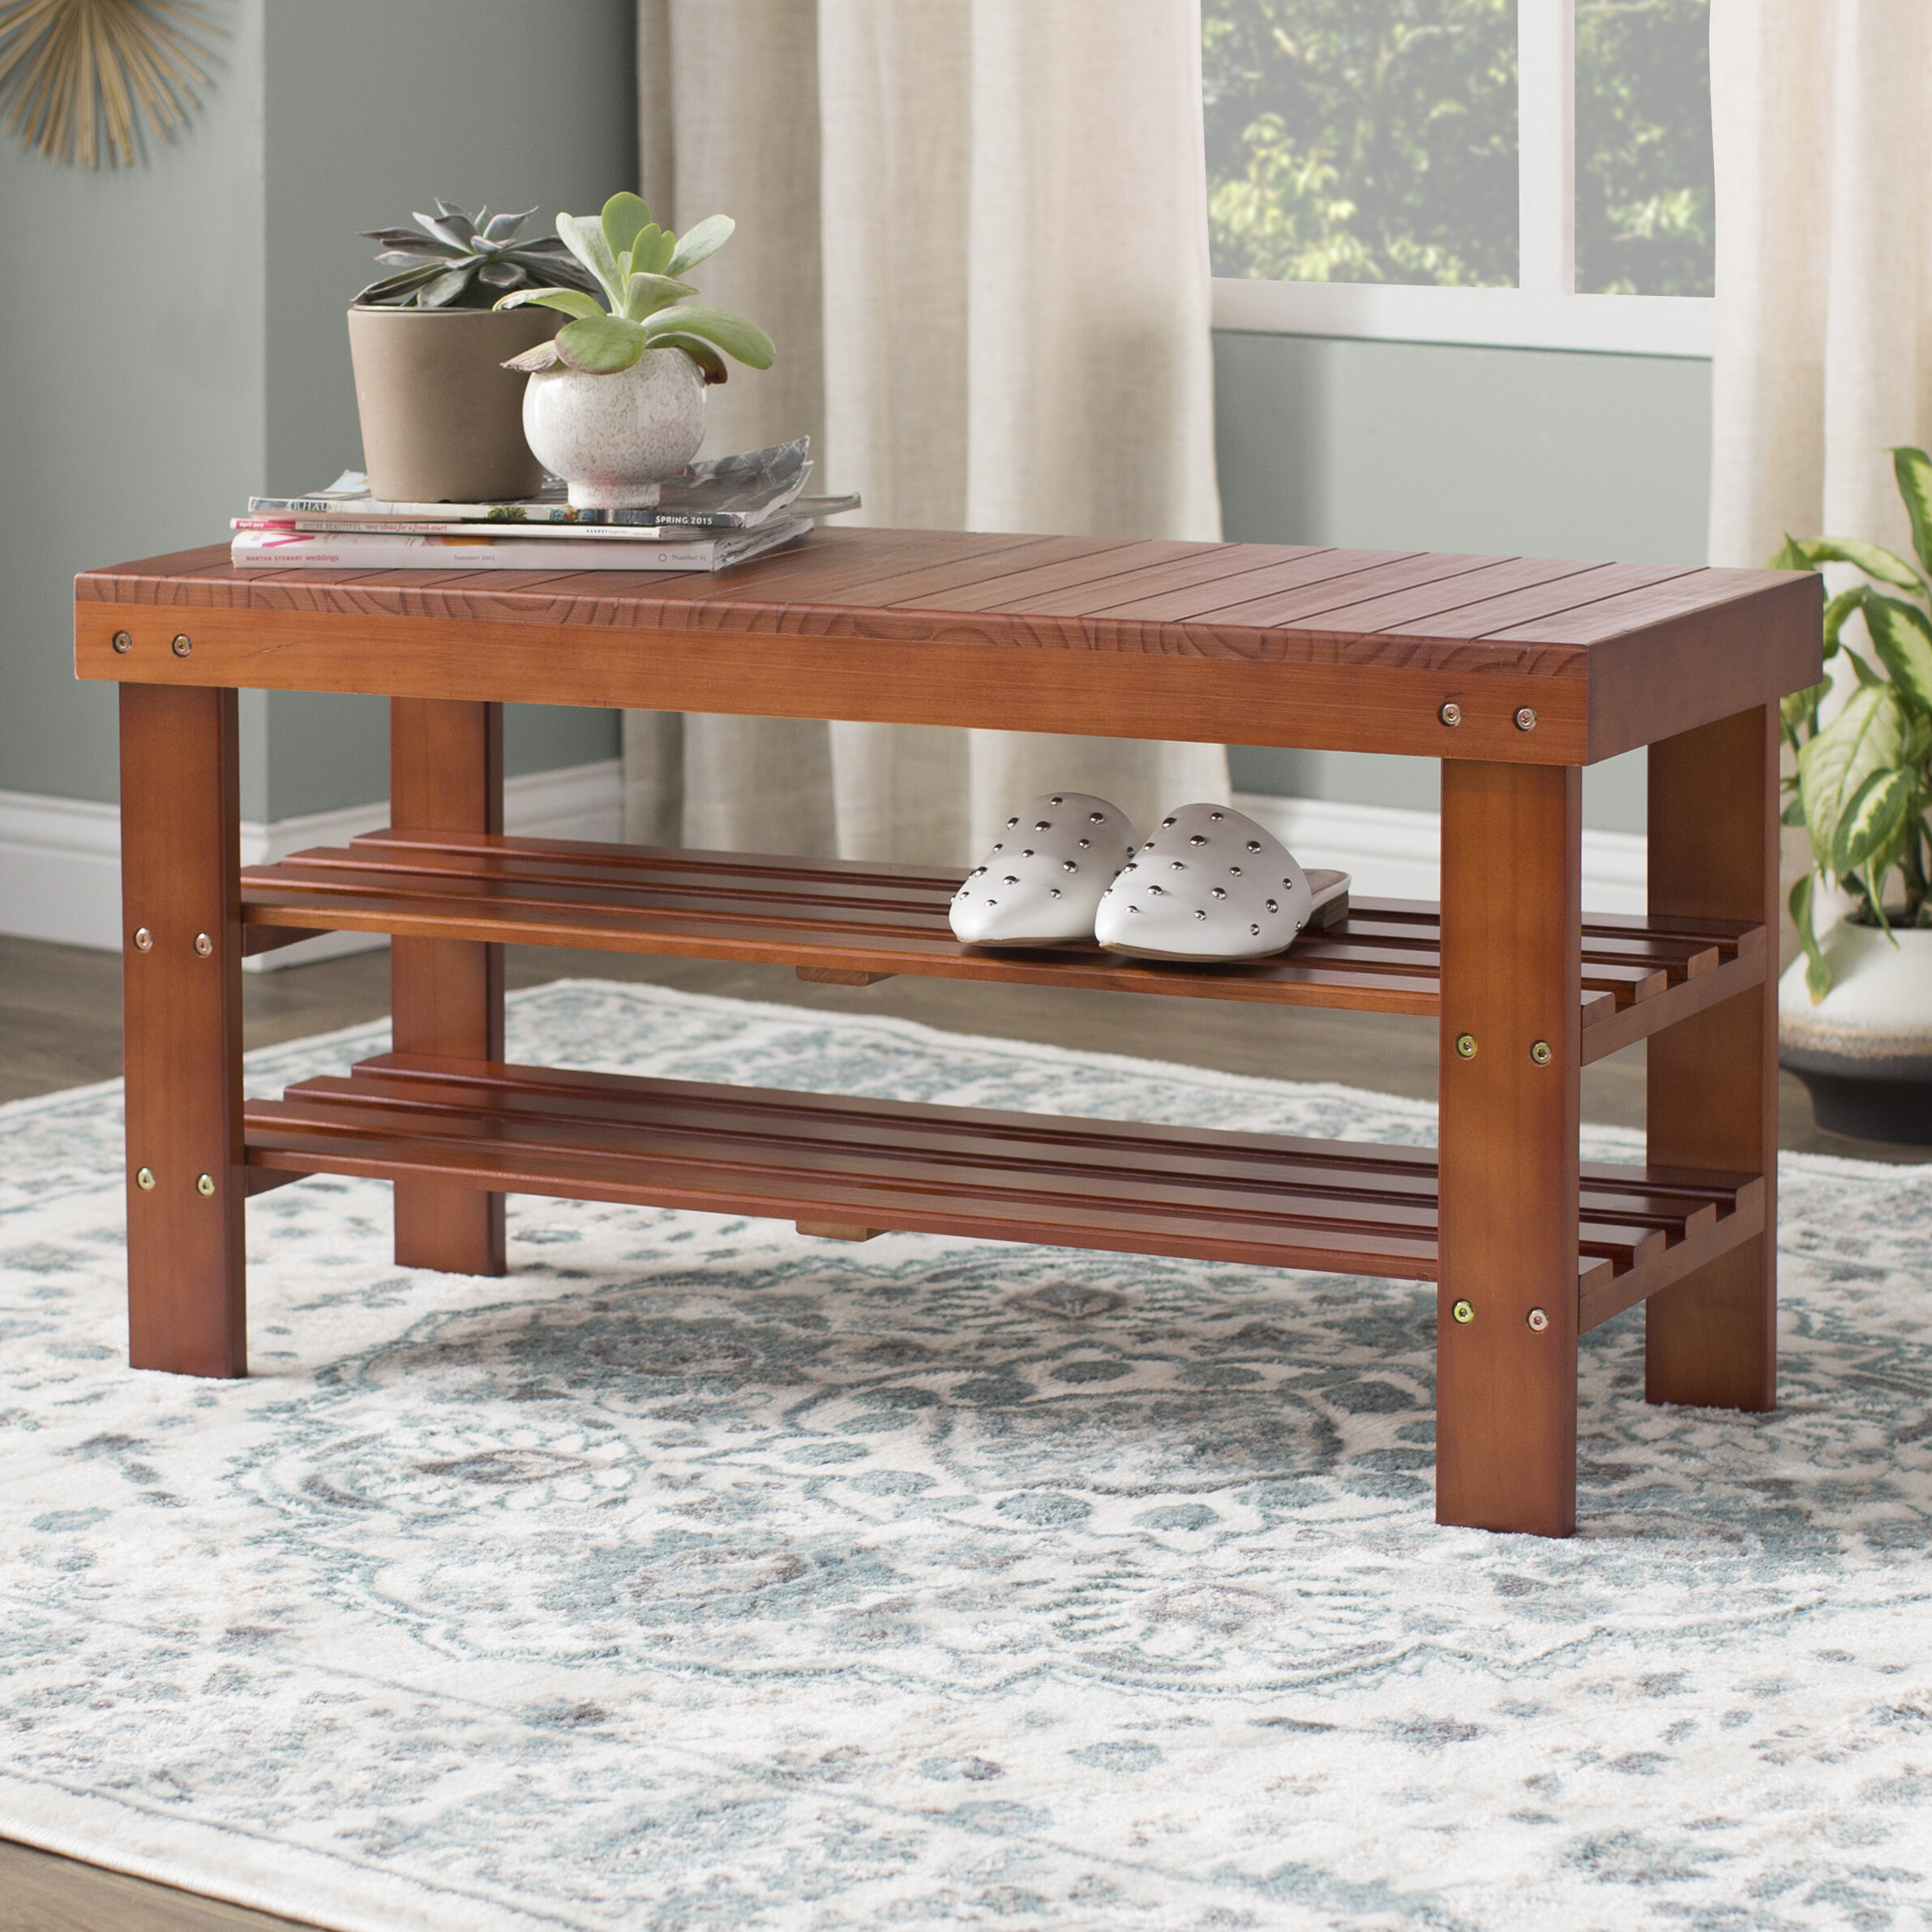 Large Storage Bench For Outdoor And Indoor Space Andover Mills Theiss Wood Storage Bench U0026 Reviews | Wayfair